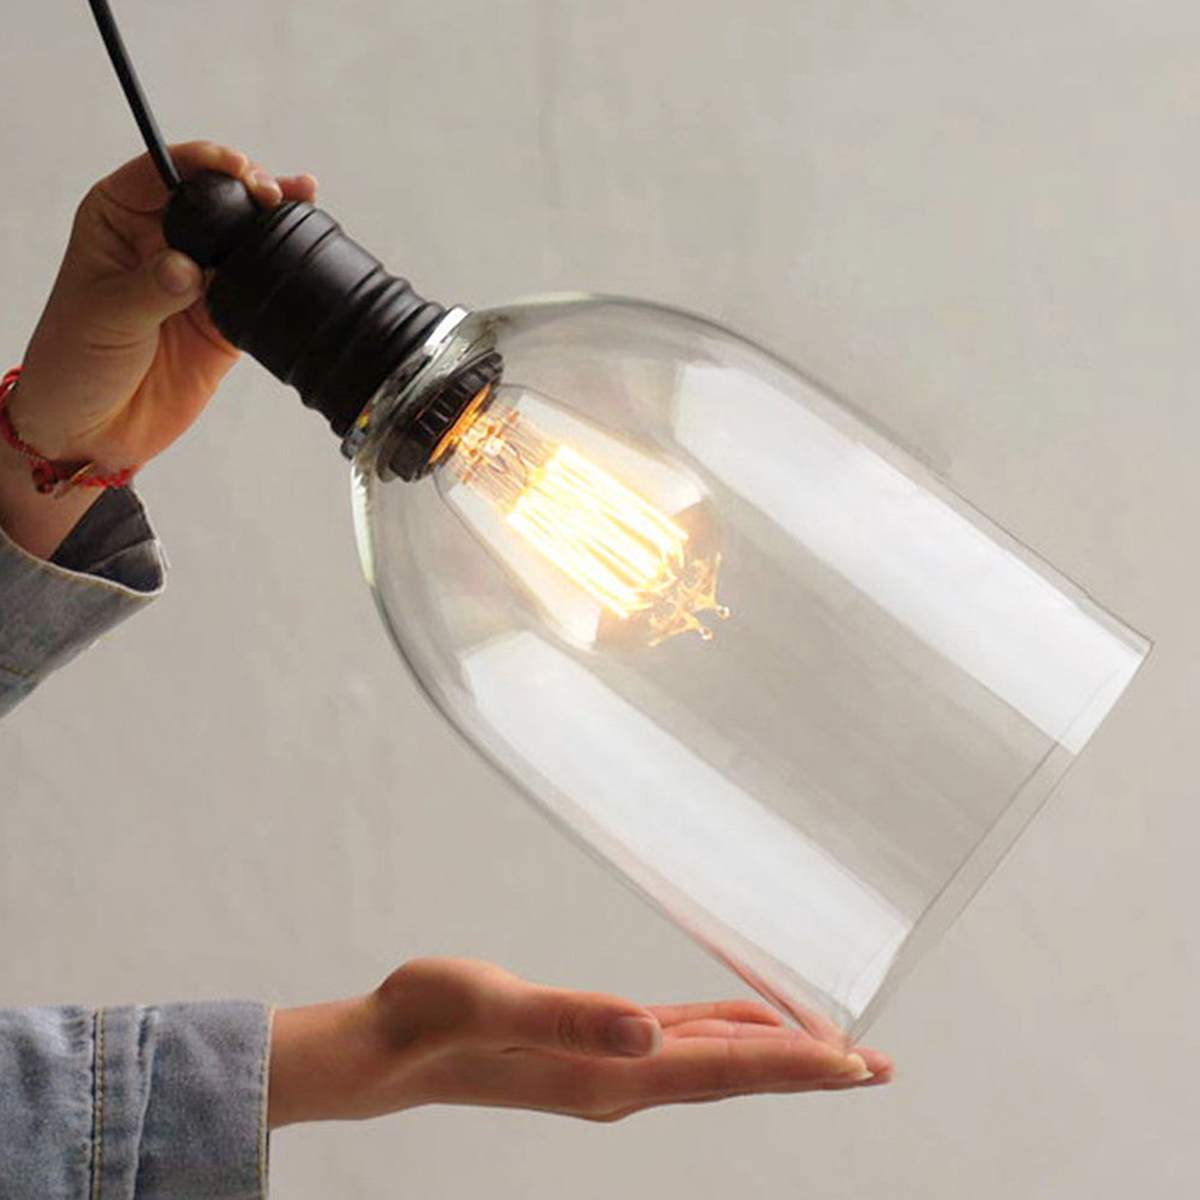 E27 Retro Vintage Chandelier Lamp Shade Industrial Lamp Cover Cord Coffee Bar Glass Cover Ceiling Pendant Light Base